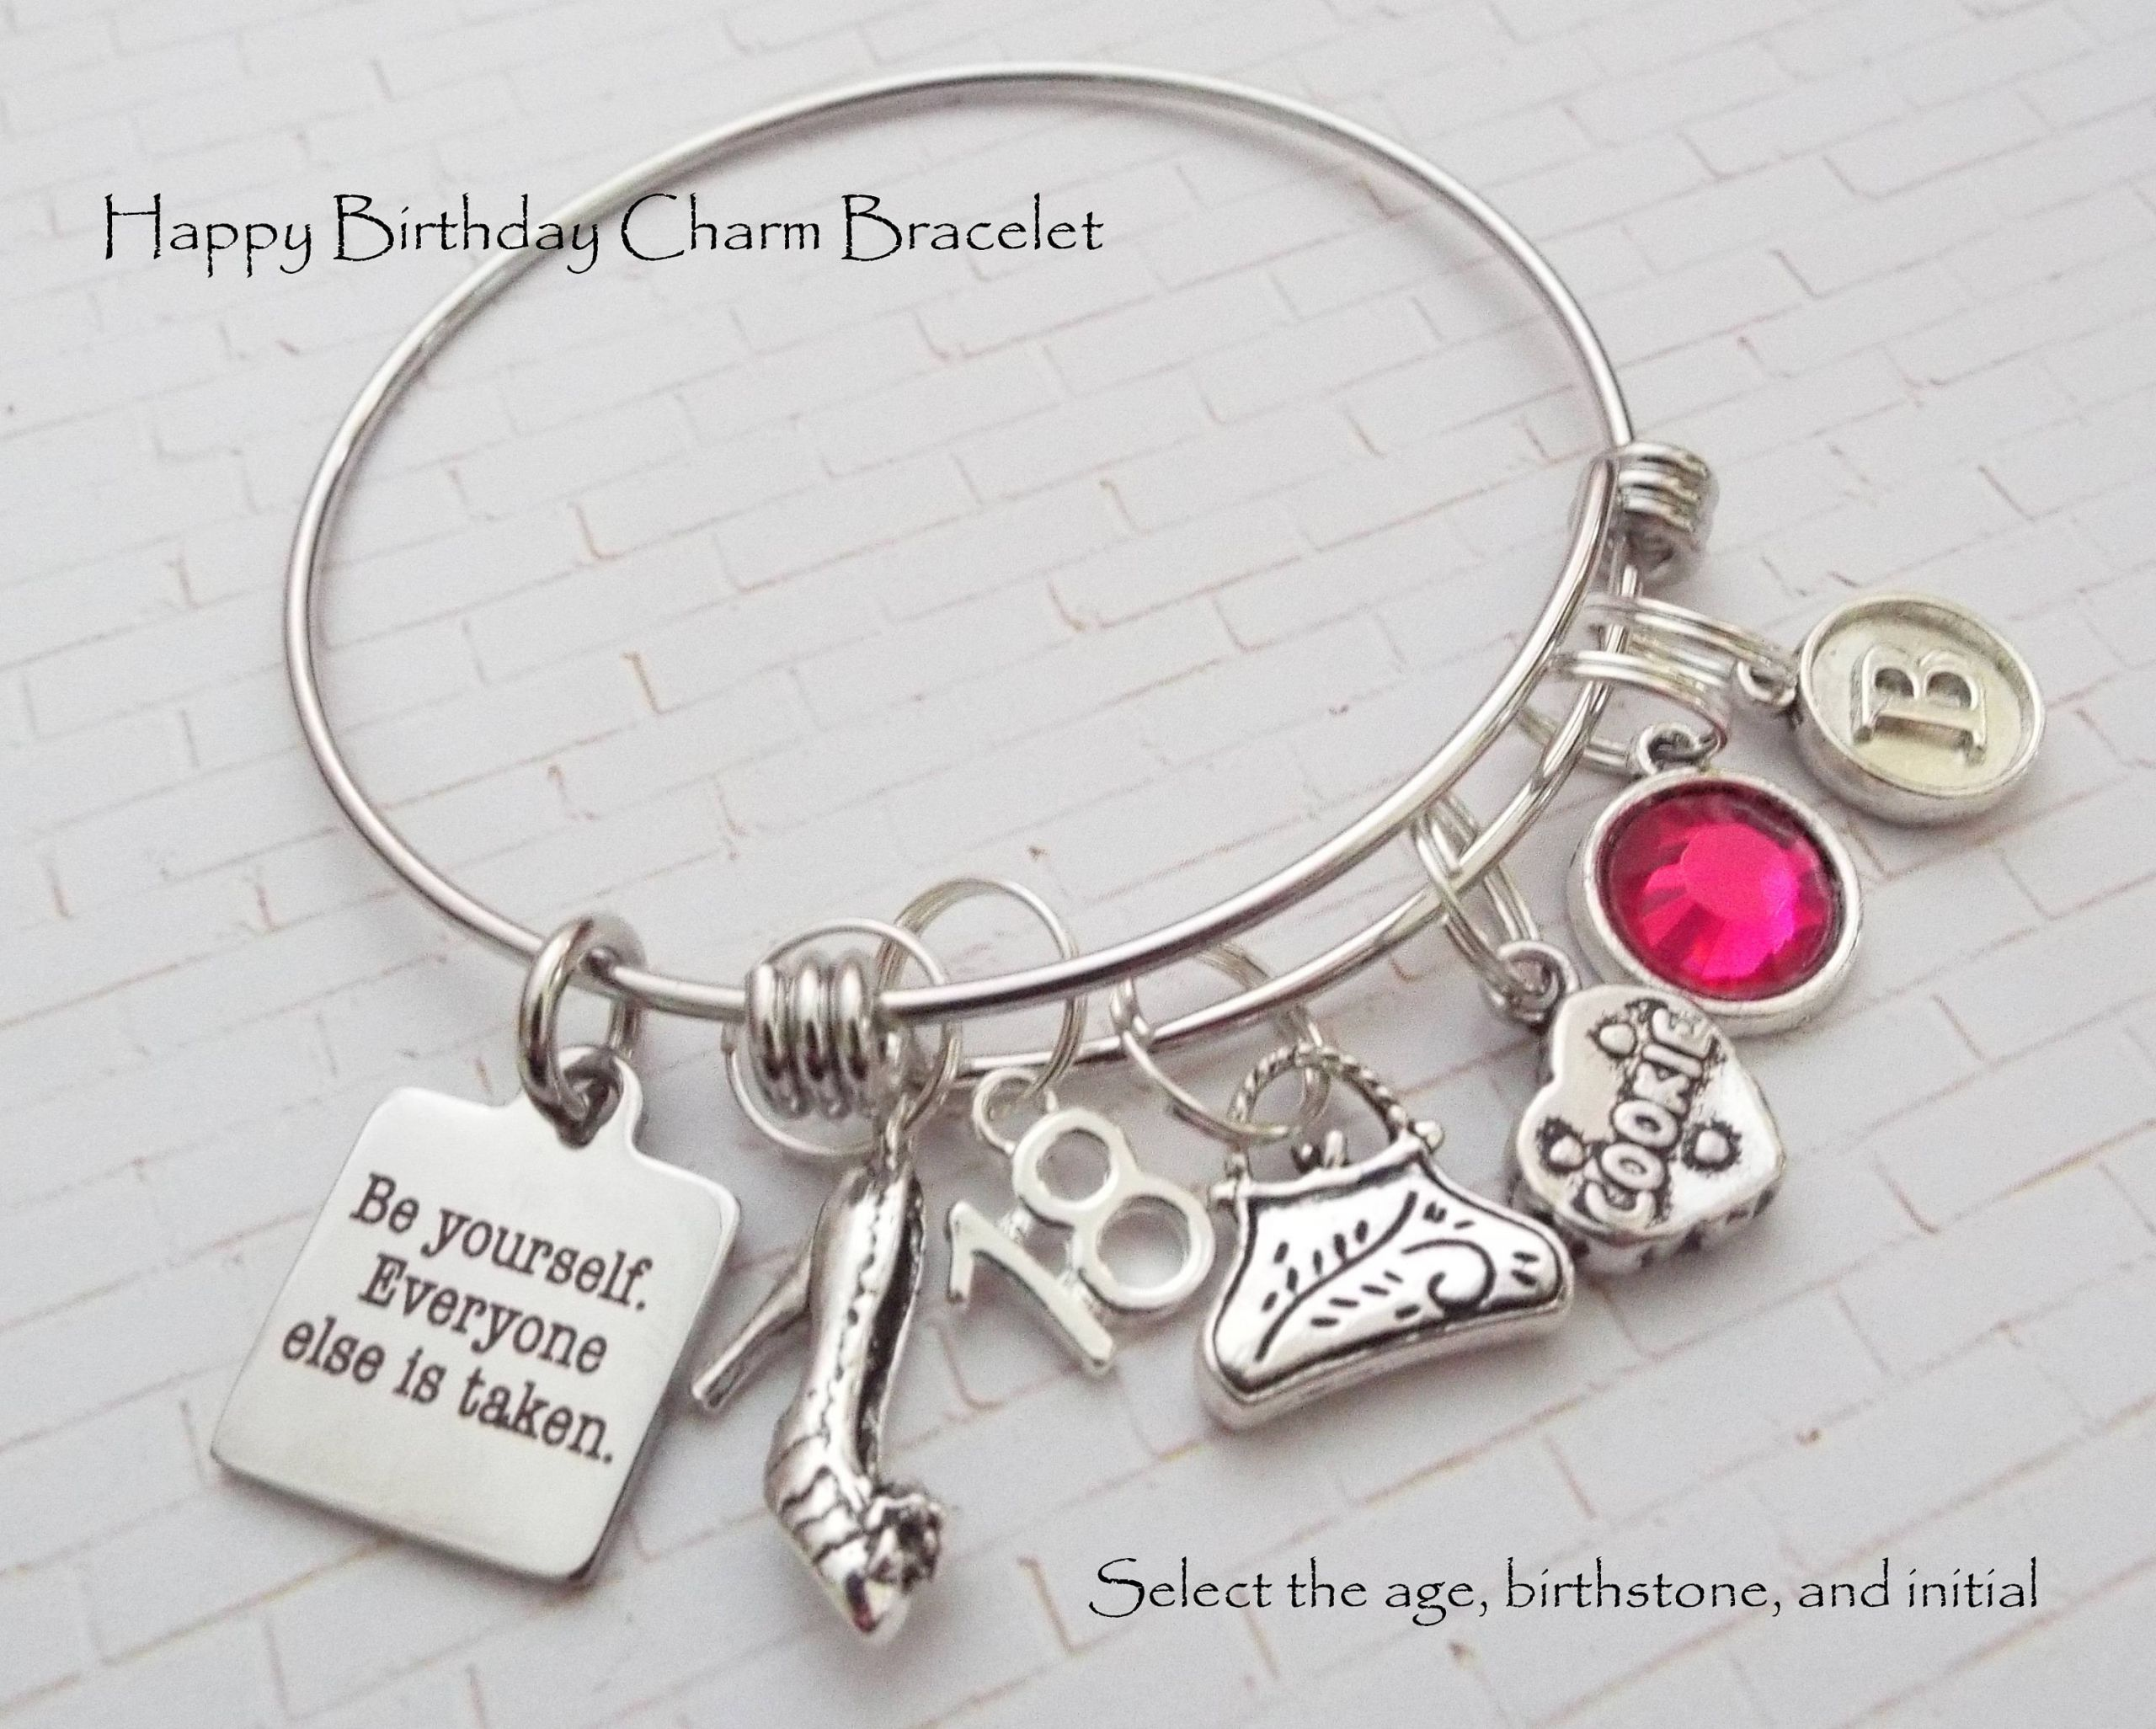 Birthday Gift Ideas For 18 Year Old Female  18th Birthday Girl Gift Birthday Gift for 18 Year Old Girl